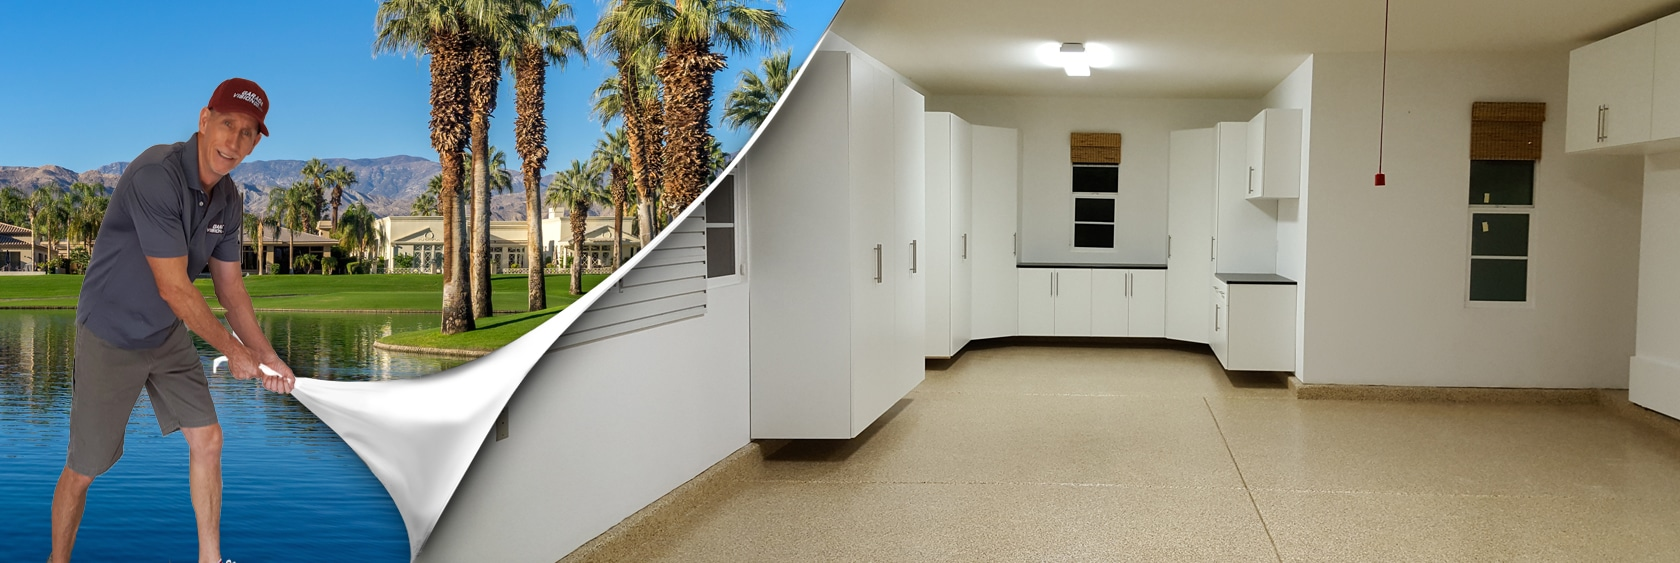 Garage Flooring Garage Cabinets Palm Desert California